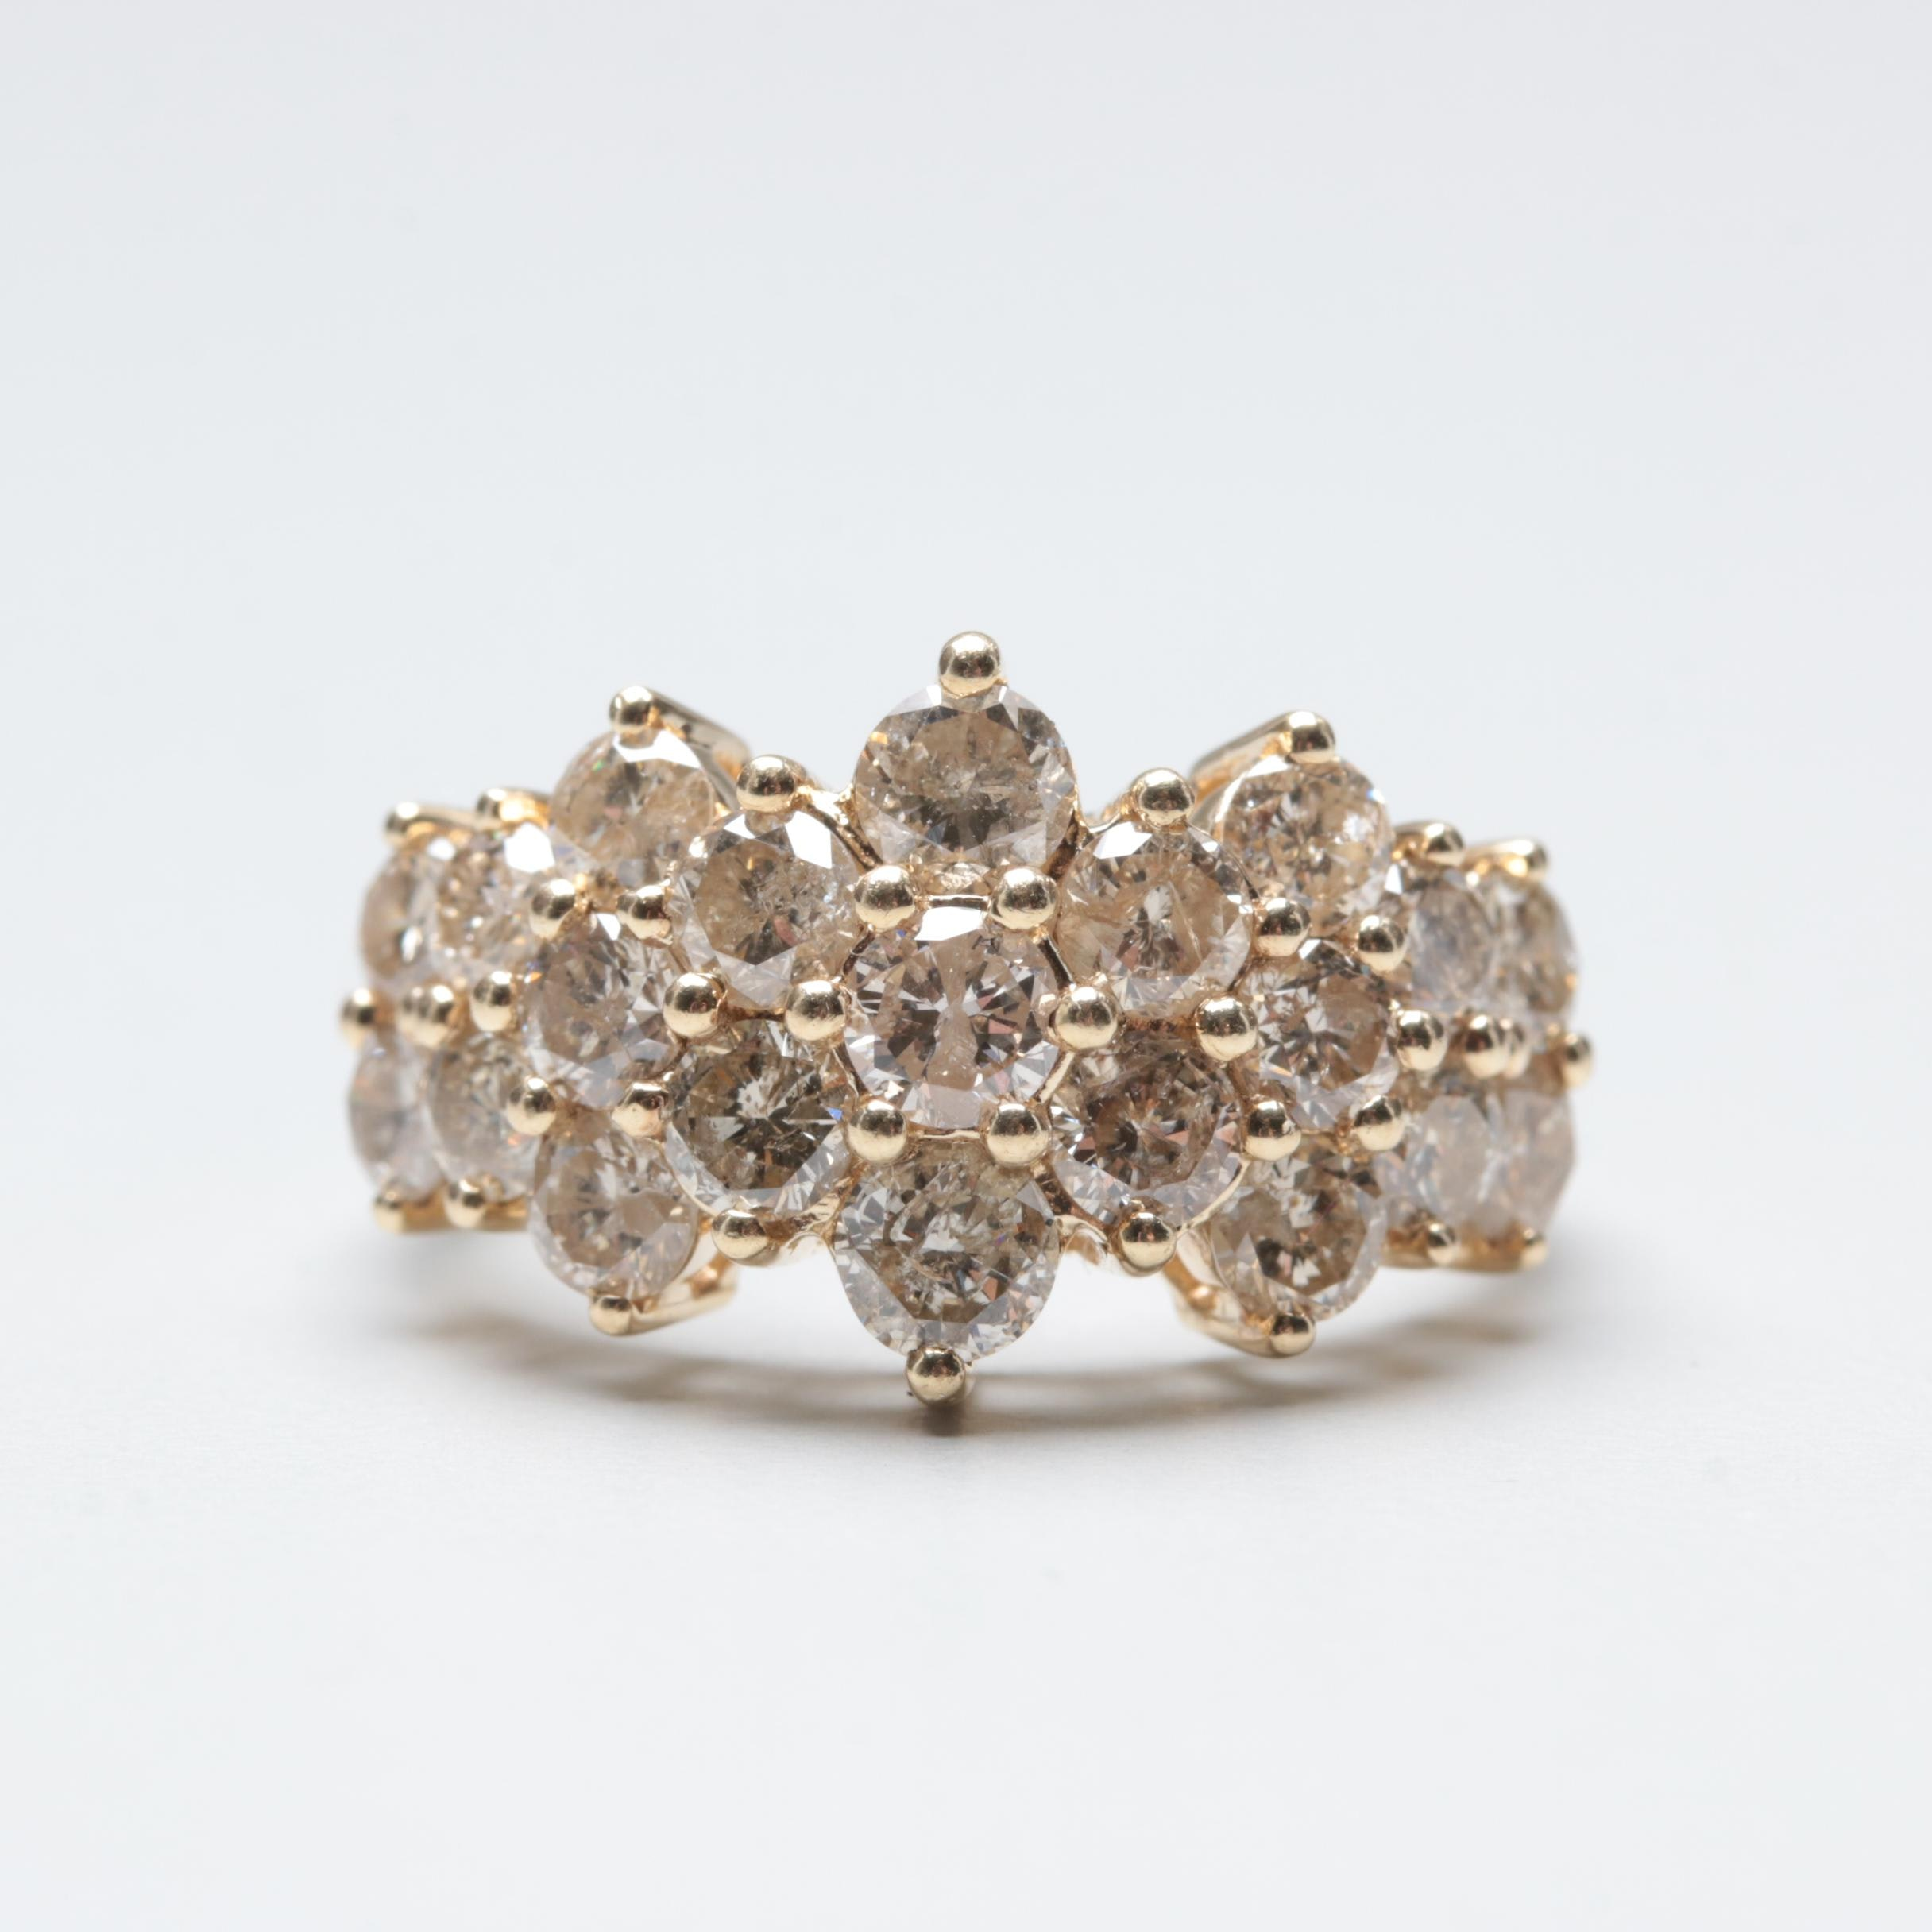 10K Yellow Gold 3.15 CTW Diamond Ring